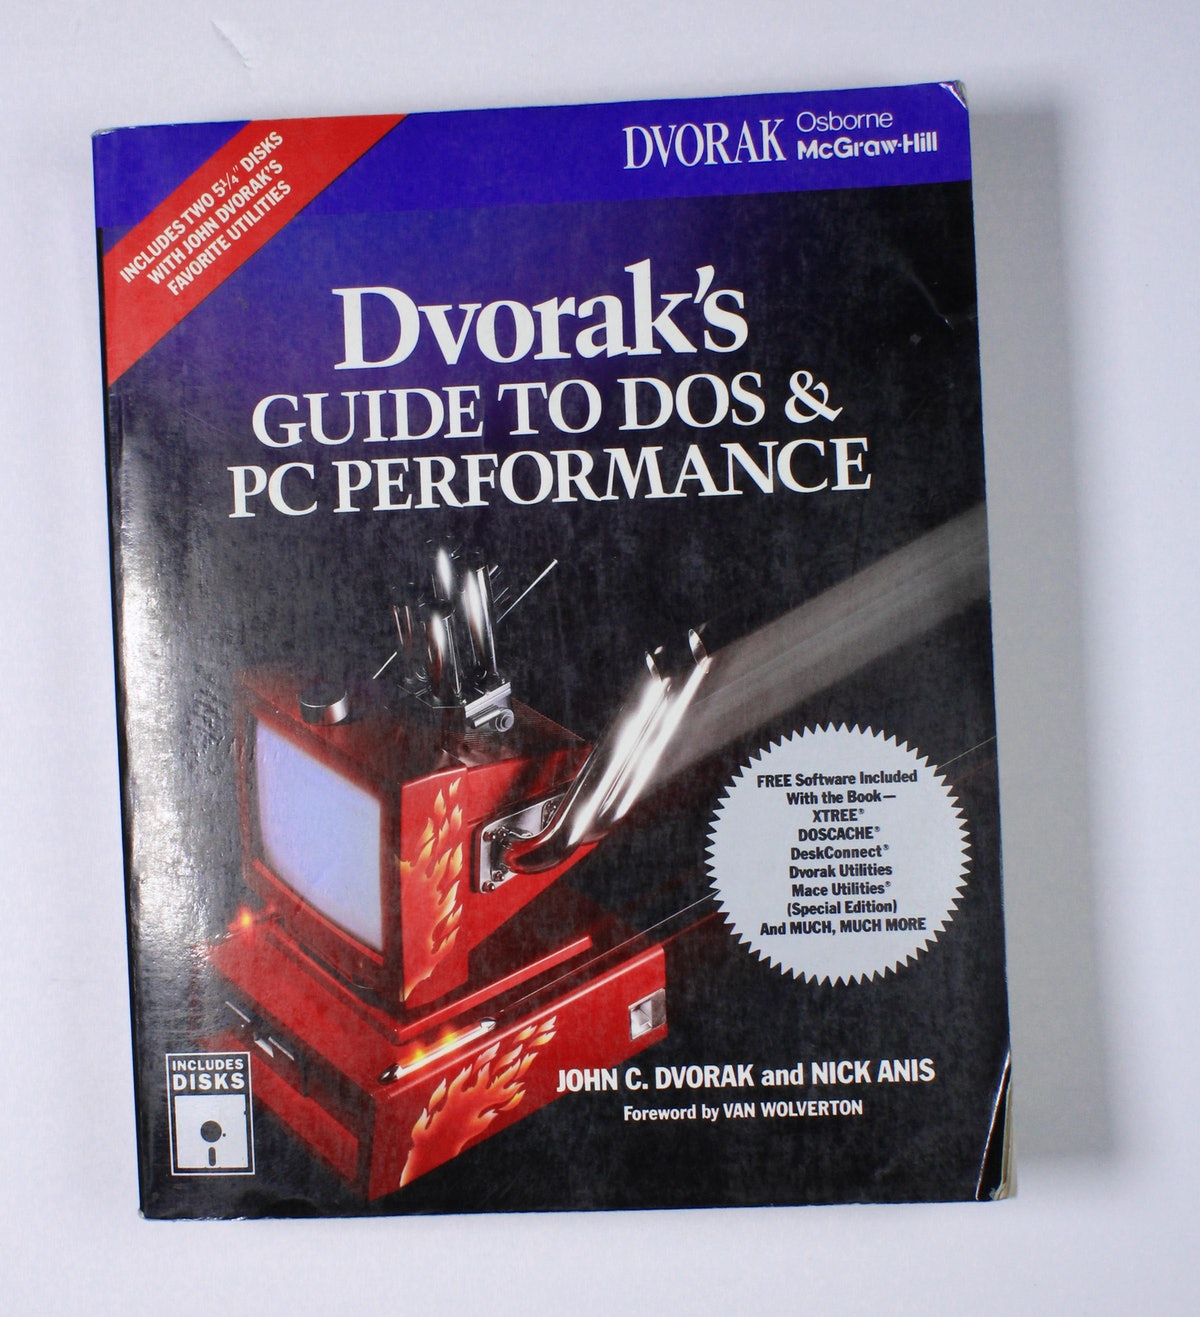 Dvorak's Guide to DOS and PC Performance